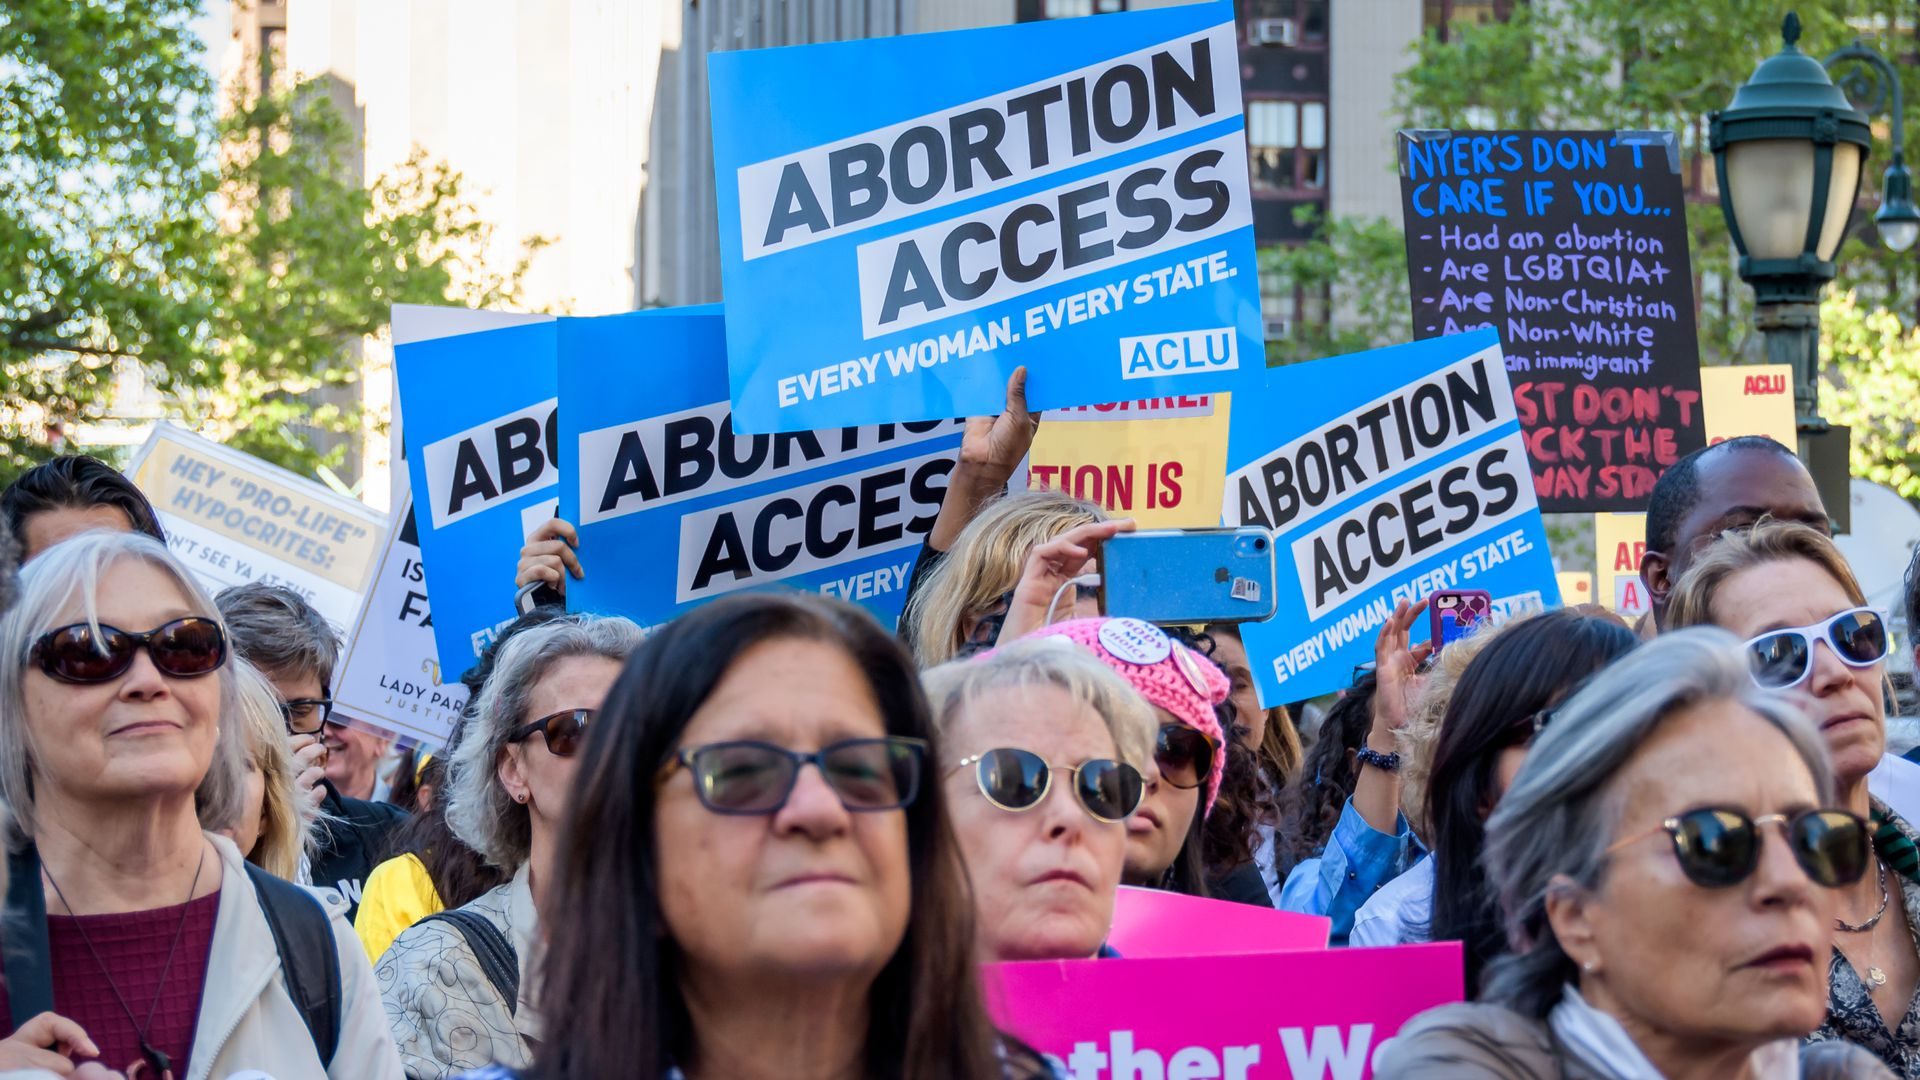 Pro-abortion protesters in New York City